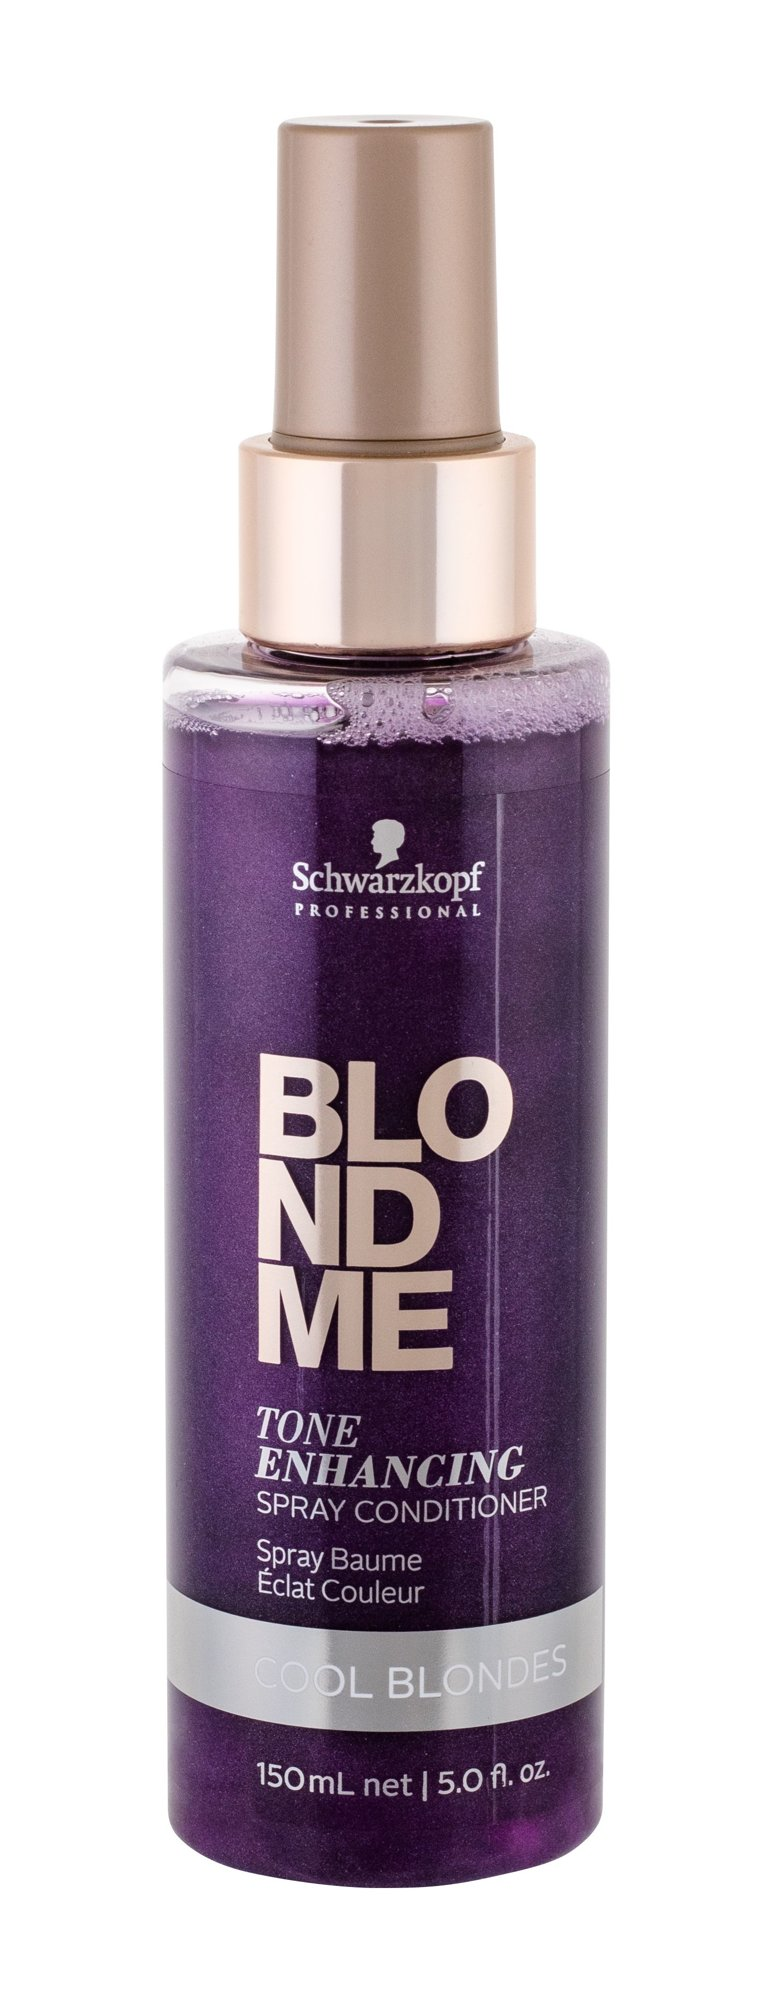 Schwarzkopf Blond Me Conditioner 150ml Cool Blondes